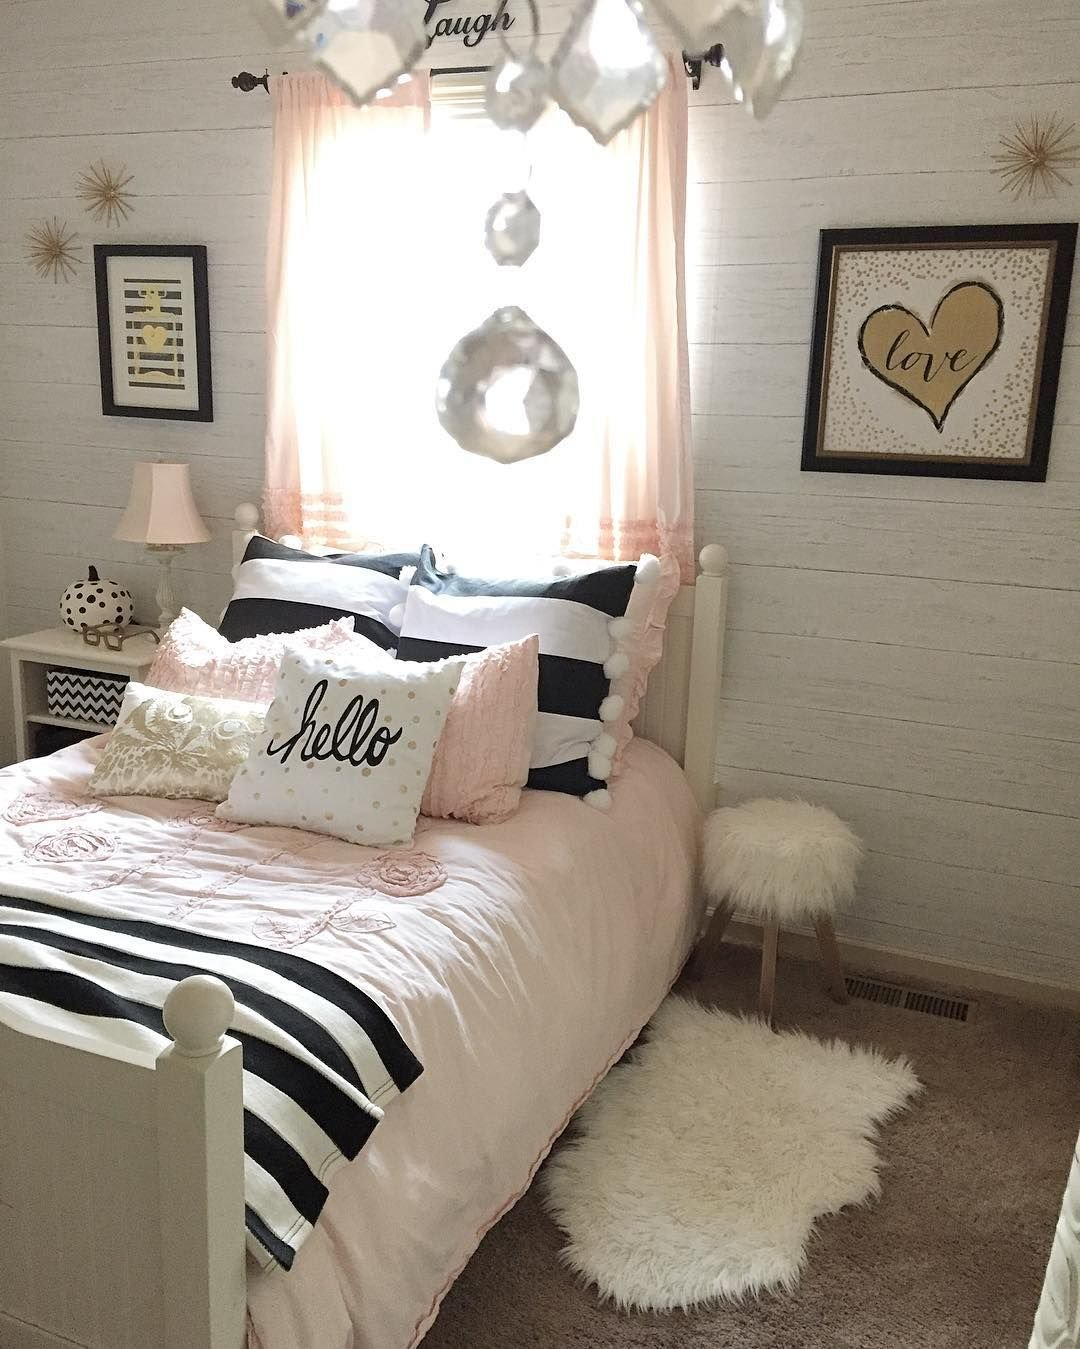 Best Girls Room Decor And Design Ideas 27 Colorfull Picture That Inspire You Our Home Cute With Pictures